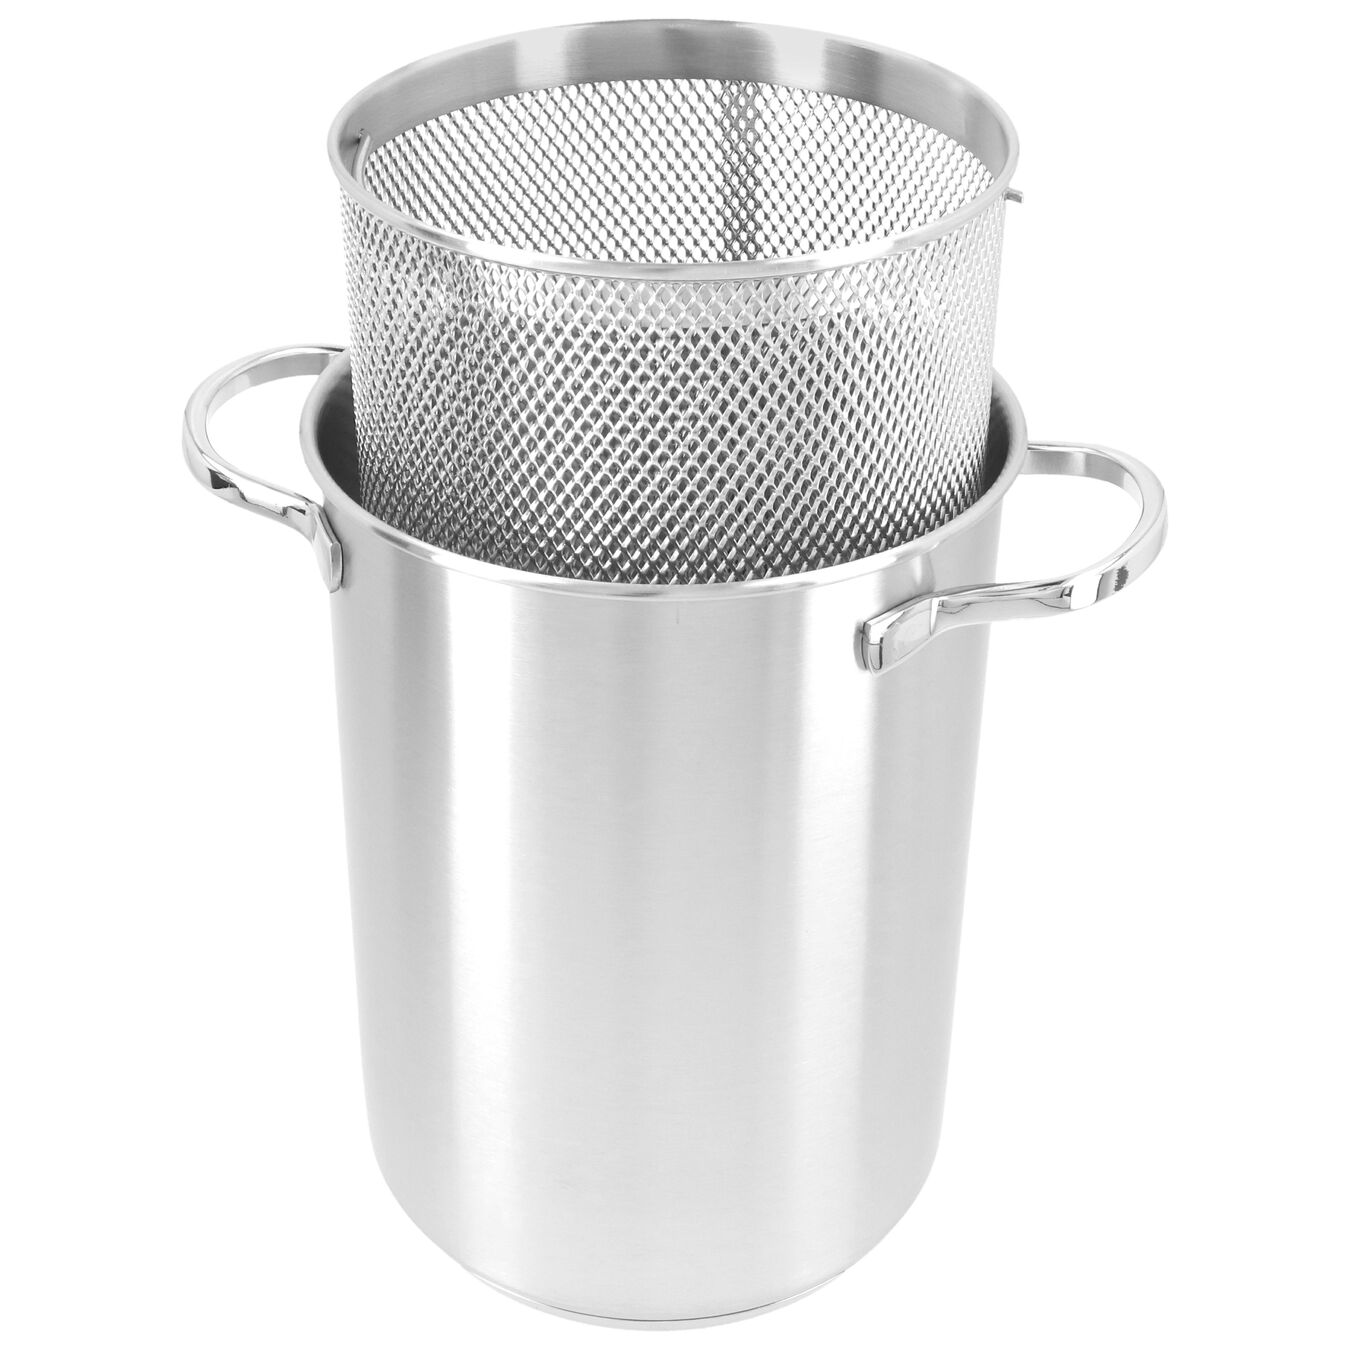 4.5 l 18/10 Stainless Steel Asparagus/Pastapot,,large 7